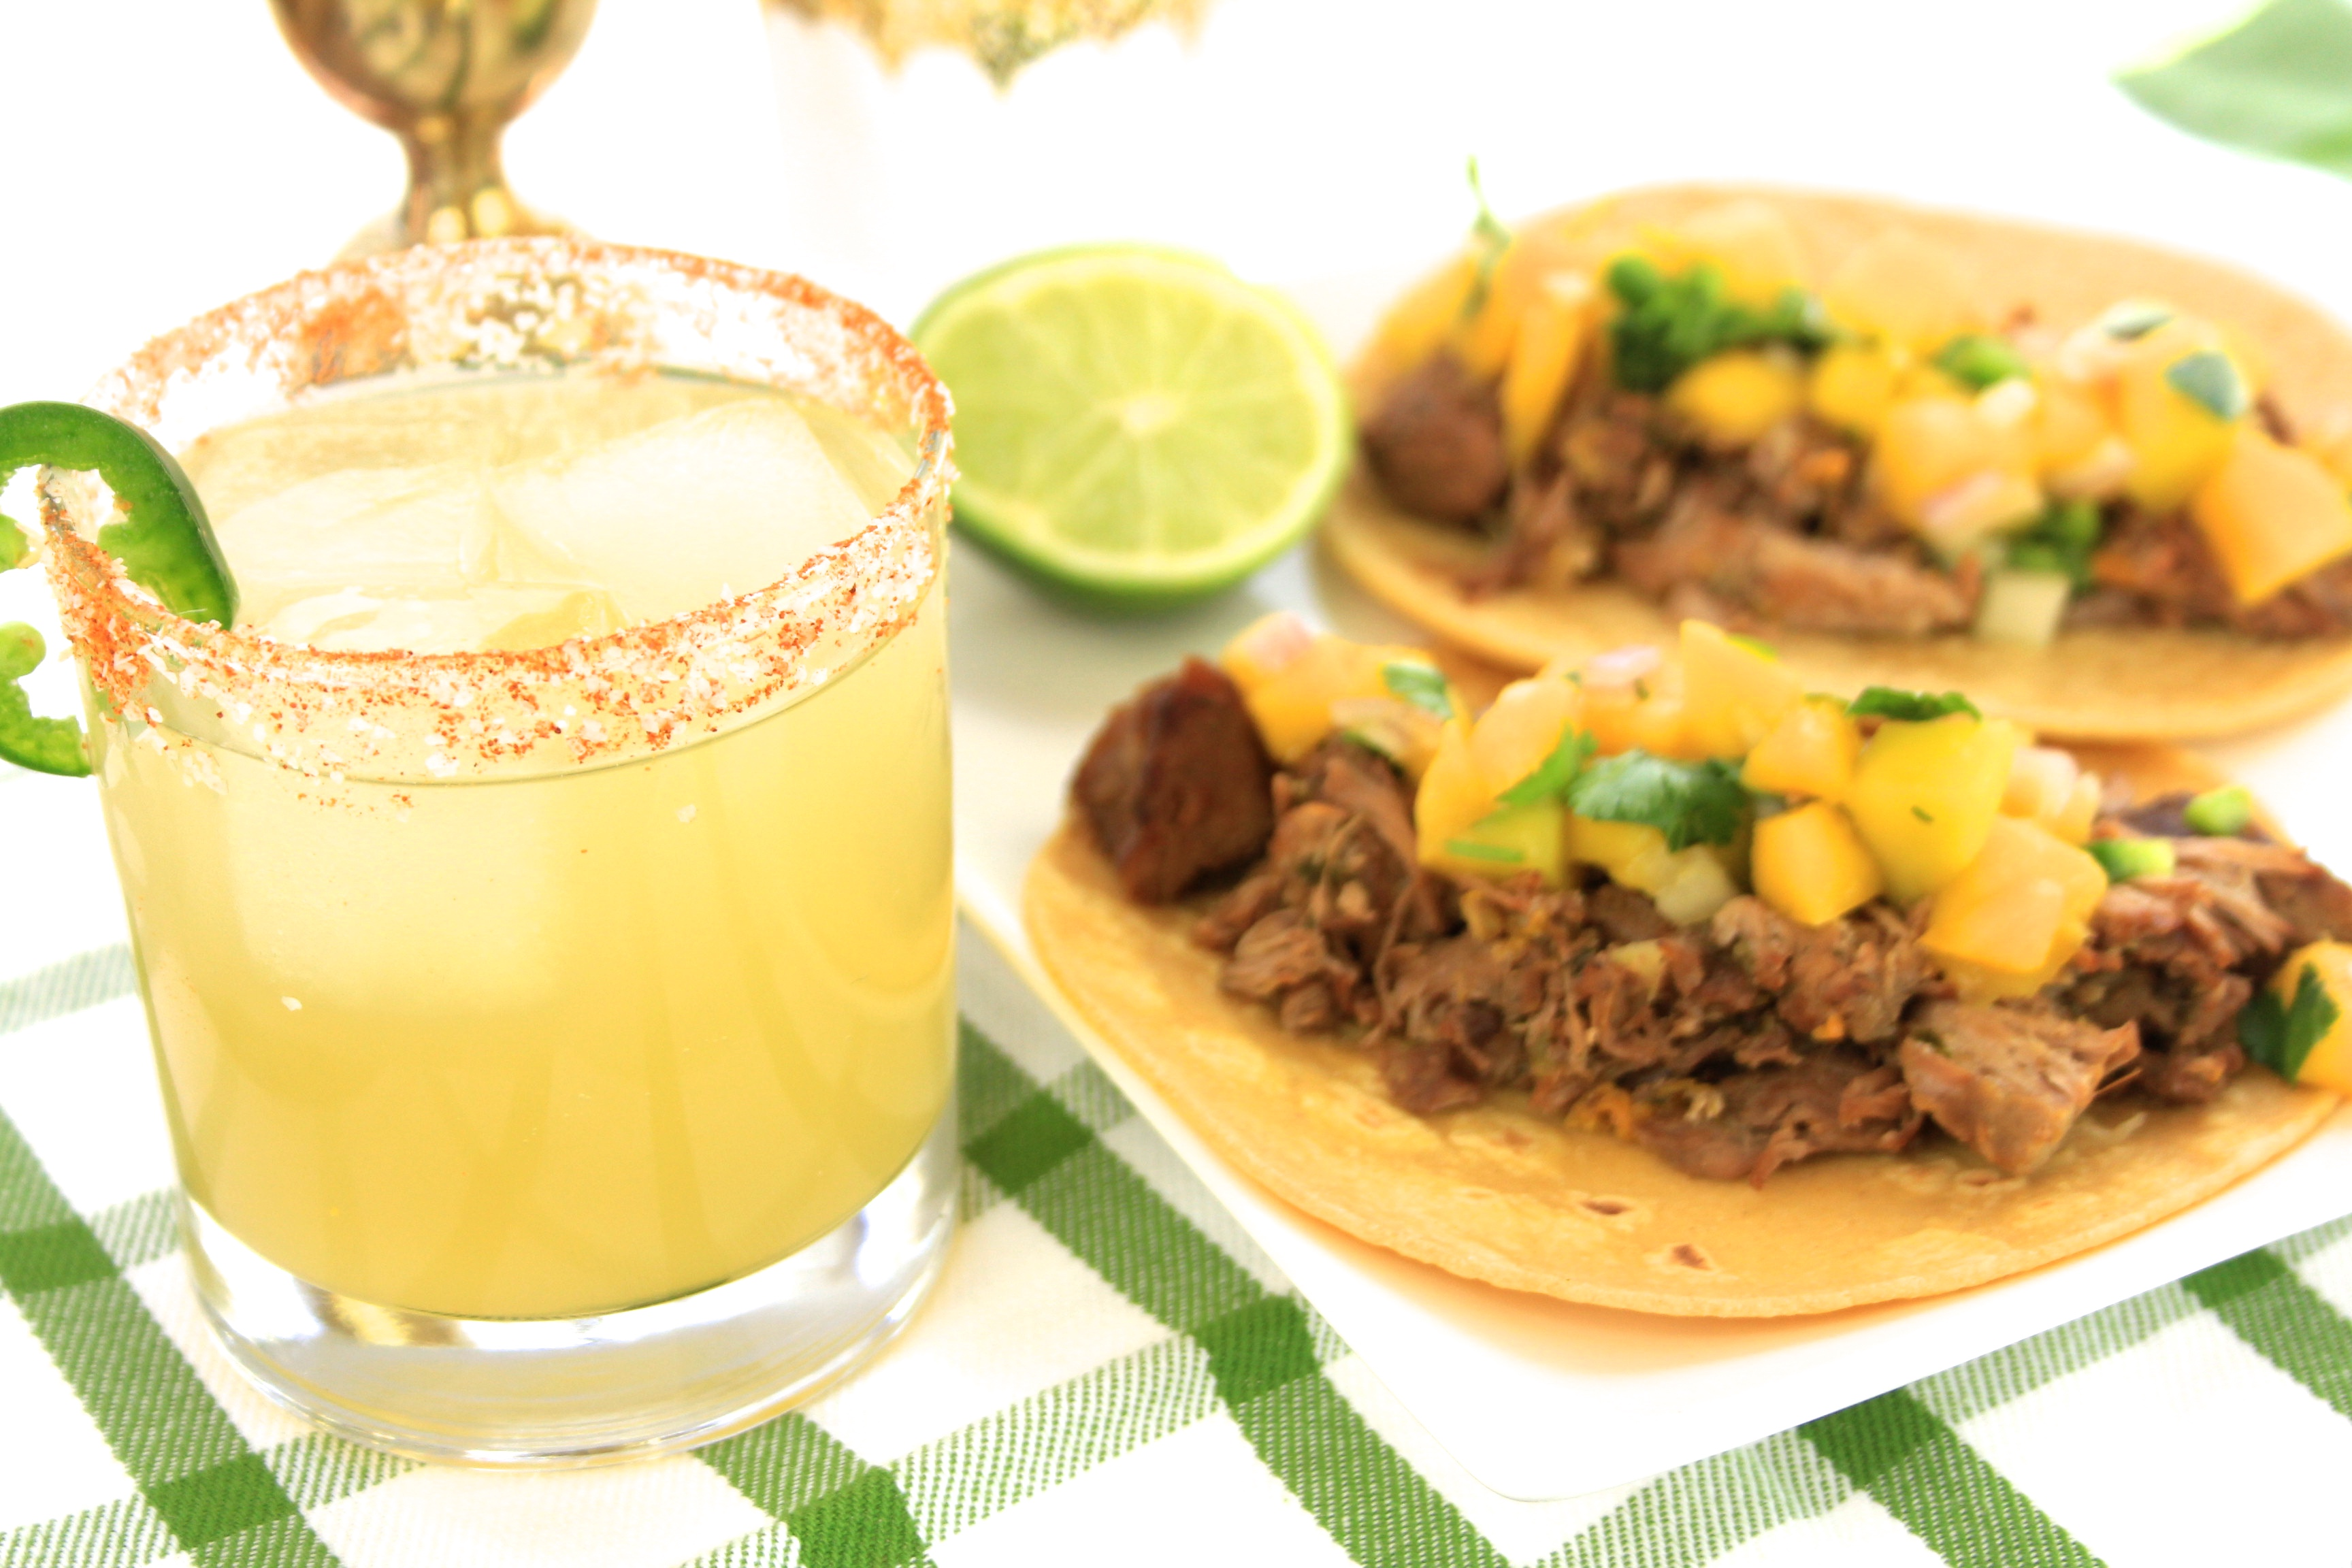 Spicy Apricot Margarita recipe paired with Killer Carnitas Tacos and Mango Salsa for Cinco De Mayo celebration